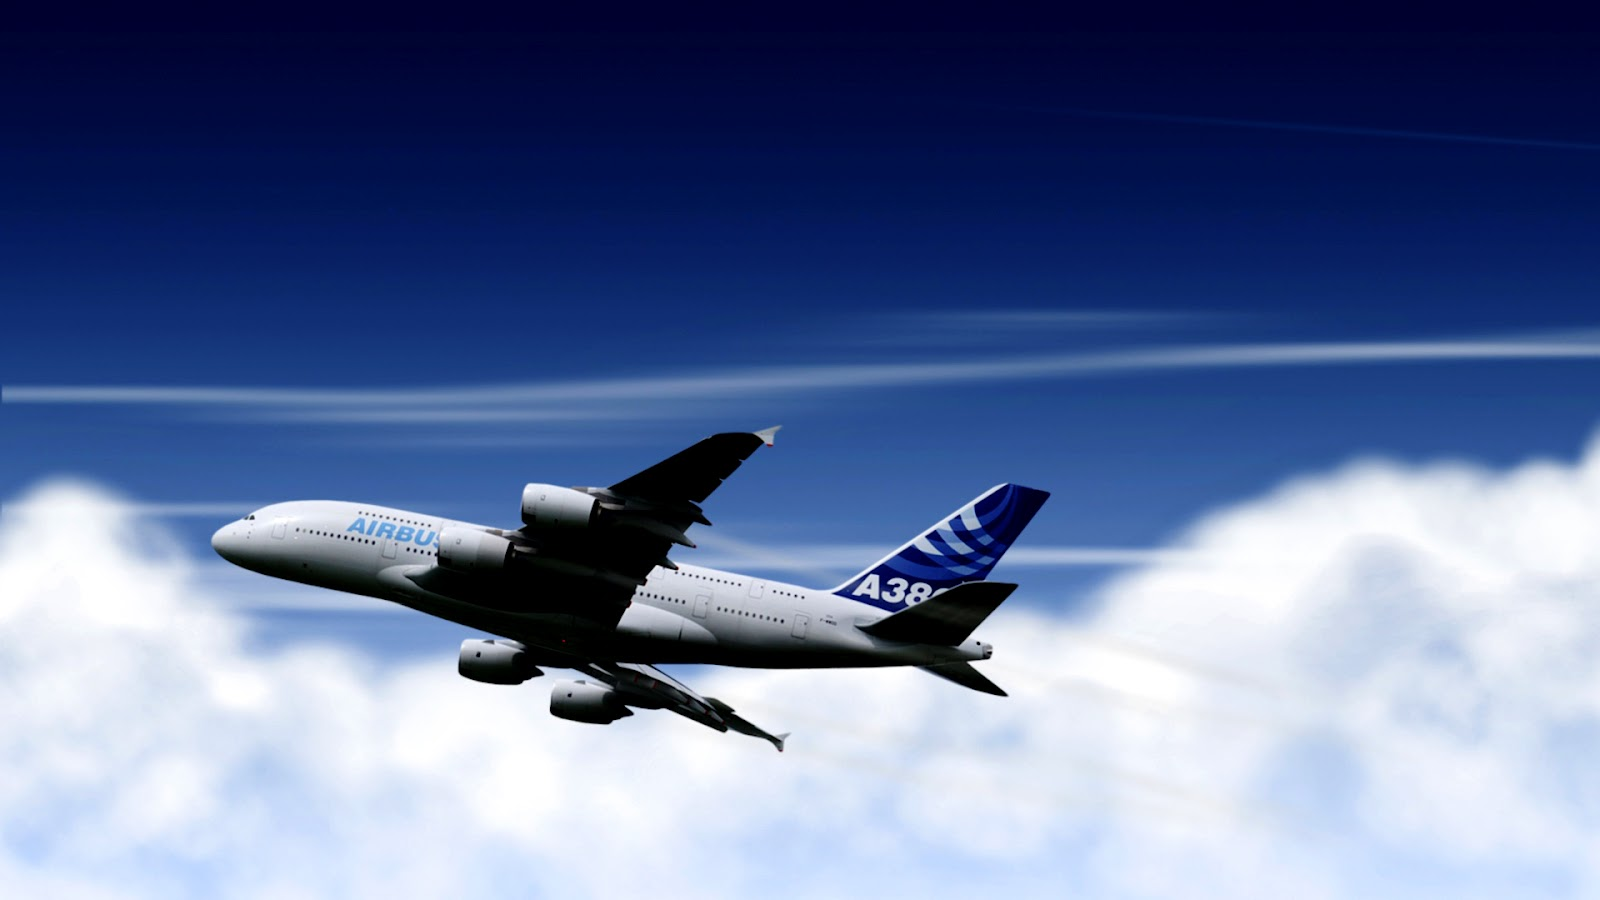 Airbus A380 Planes HD Wallpapers Download Wallpapers in HD for 1600x900